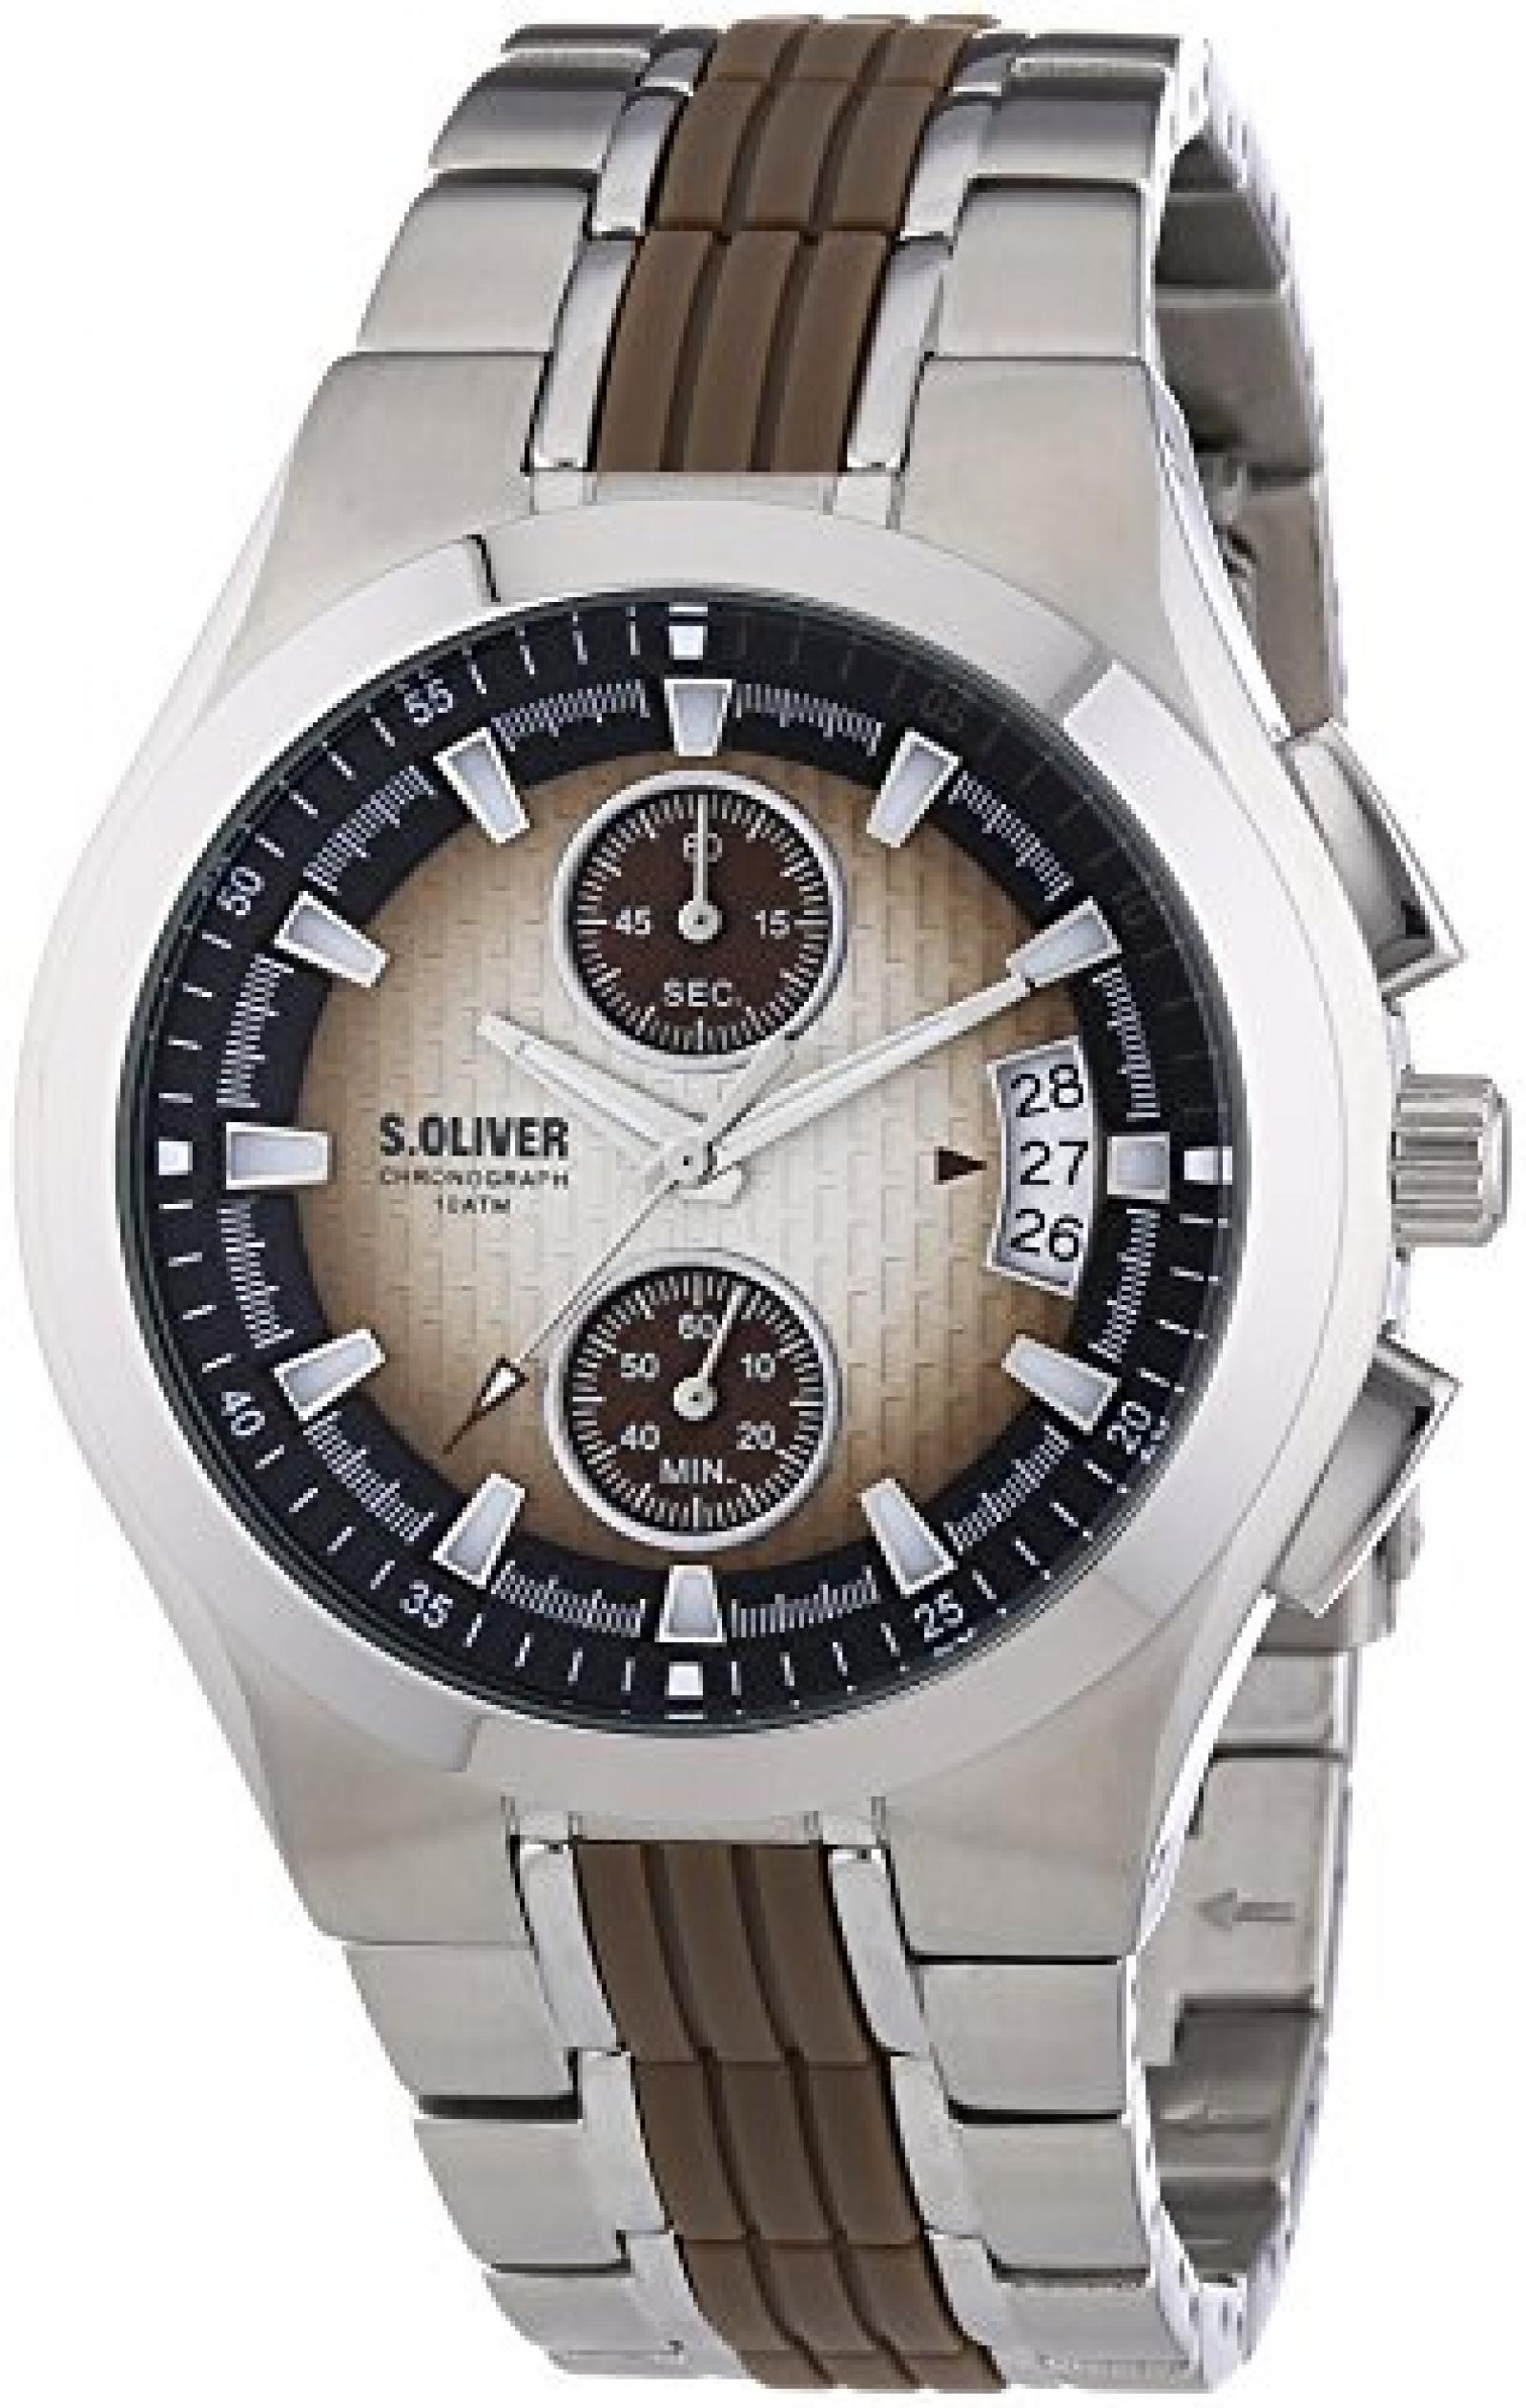 s.Oliver Herren-Armbanduhr Quarz Chronograph SO-2215-MC